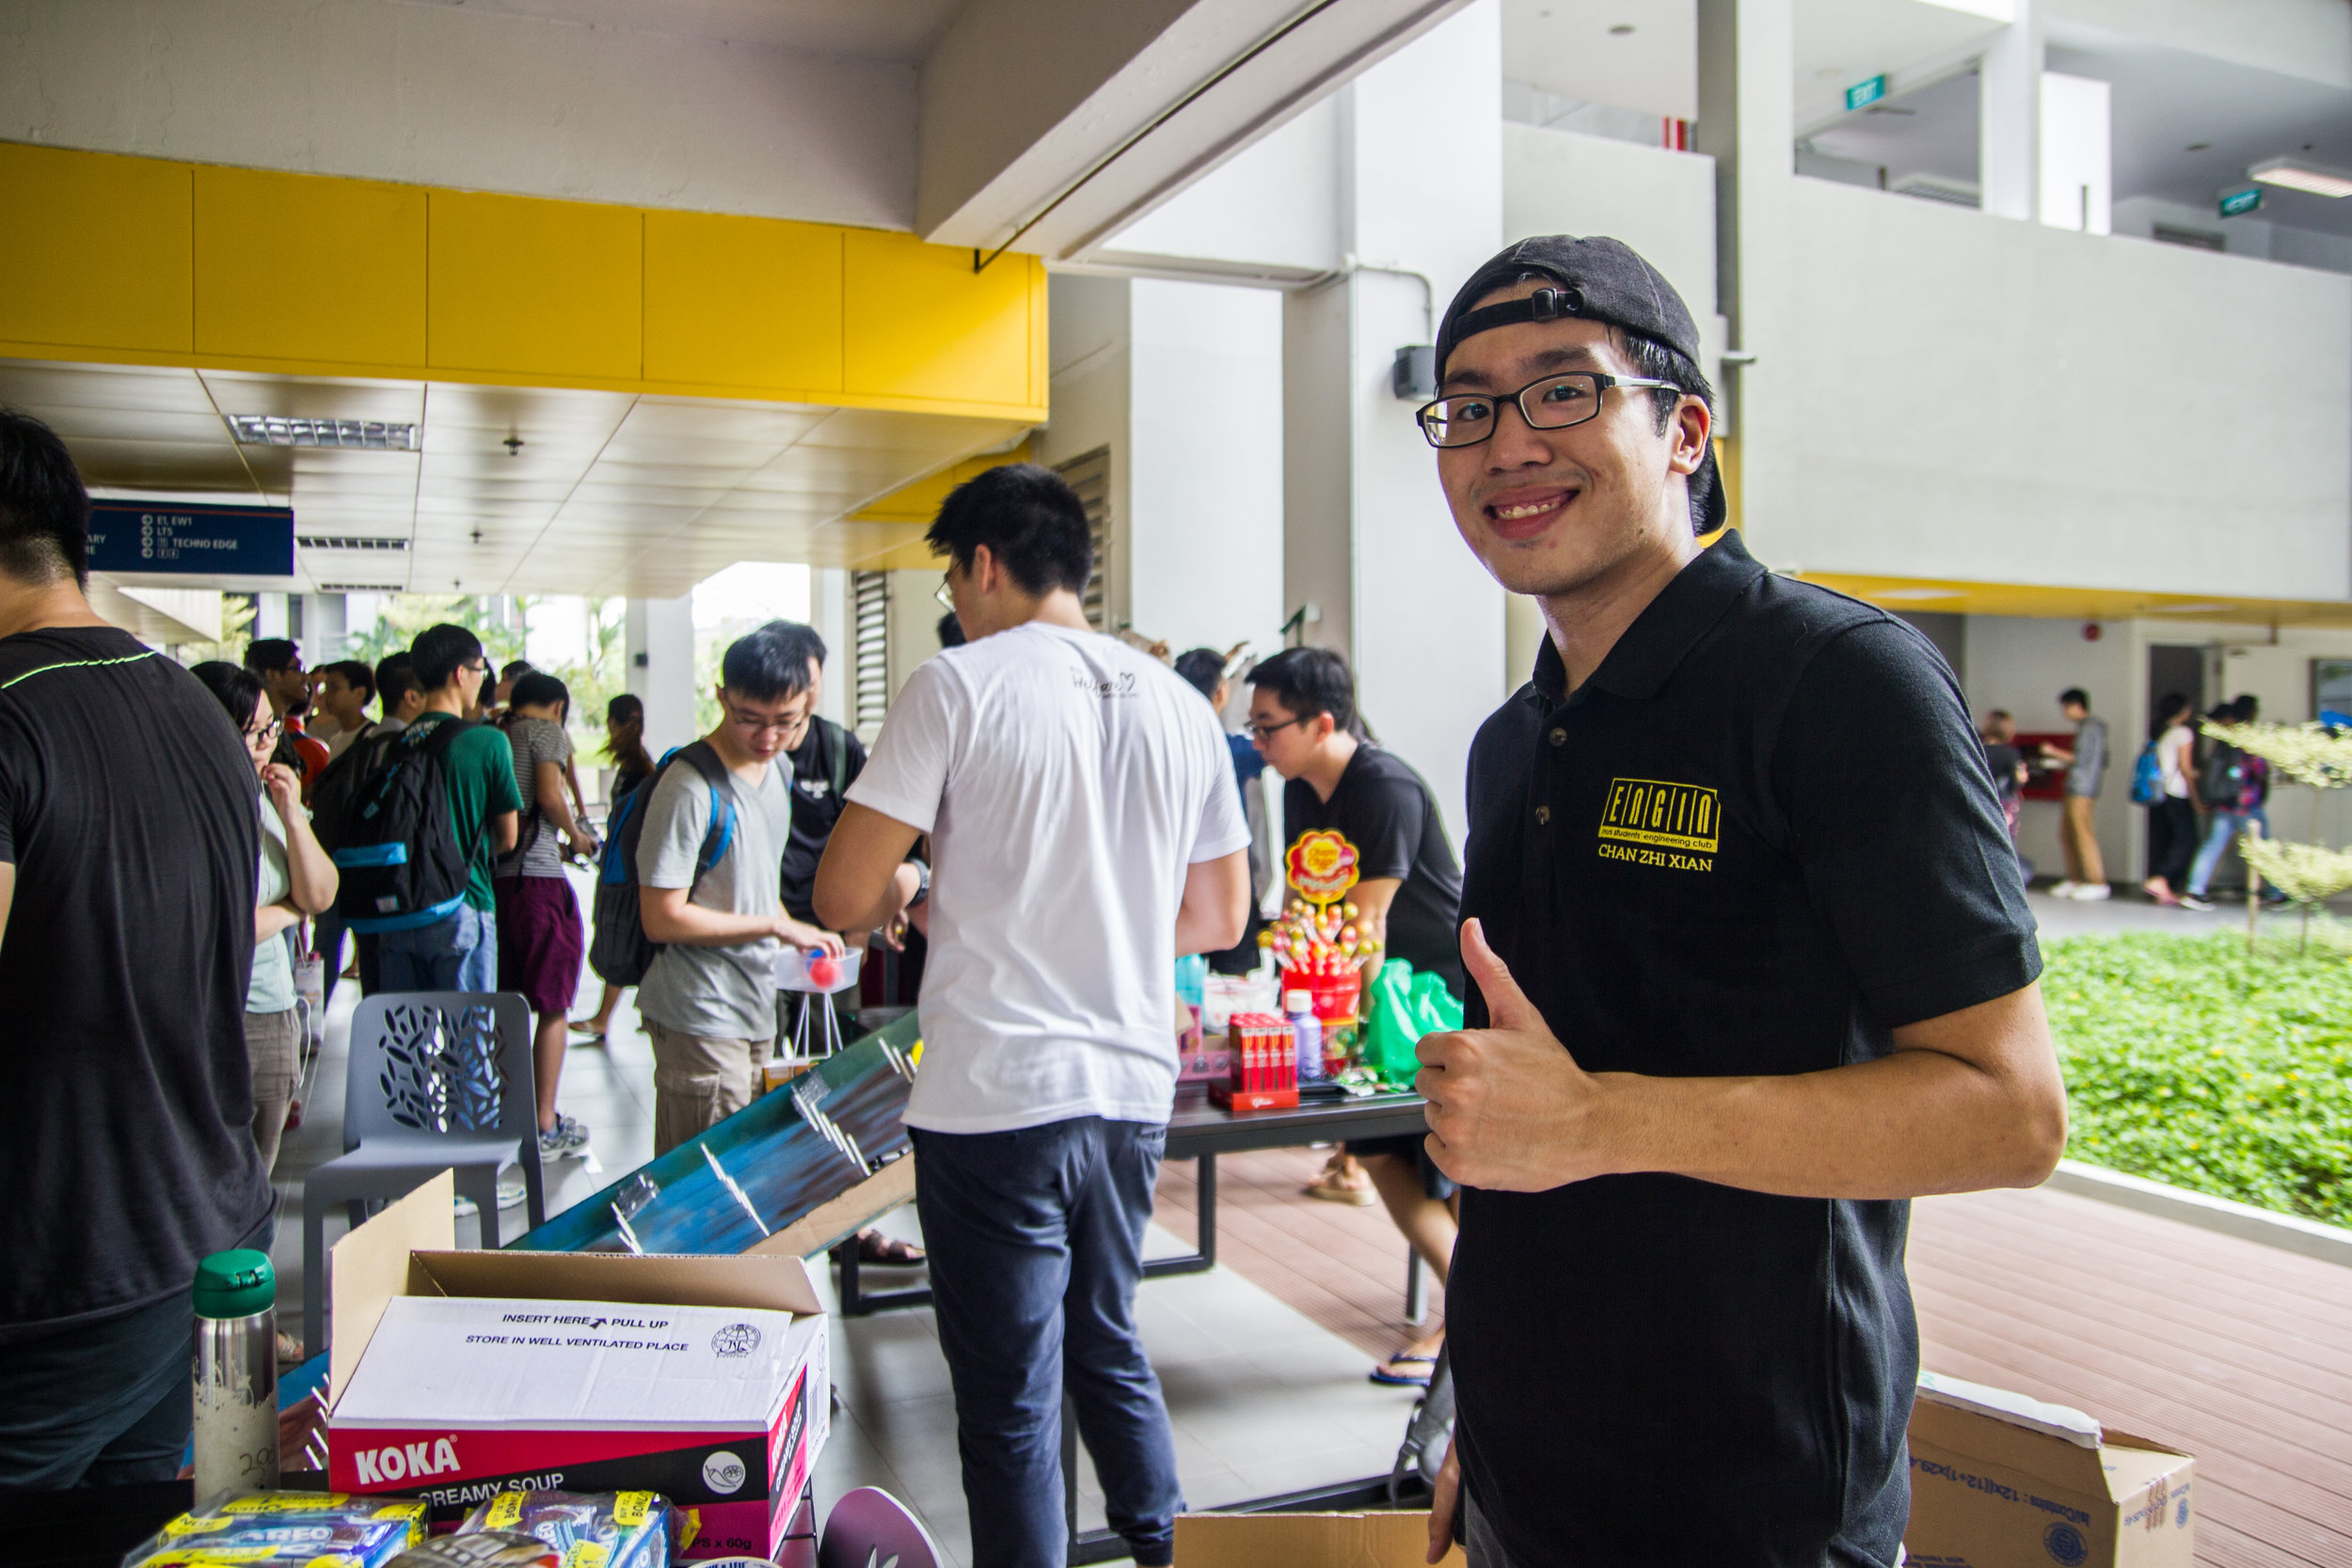 Game Booths by Student Life committee